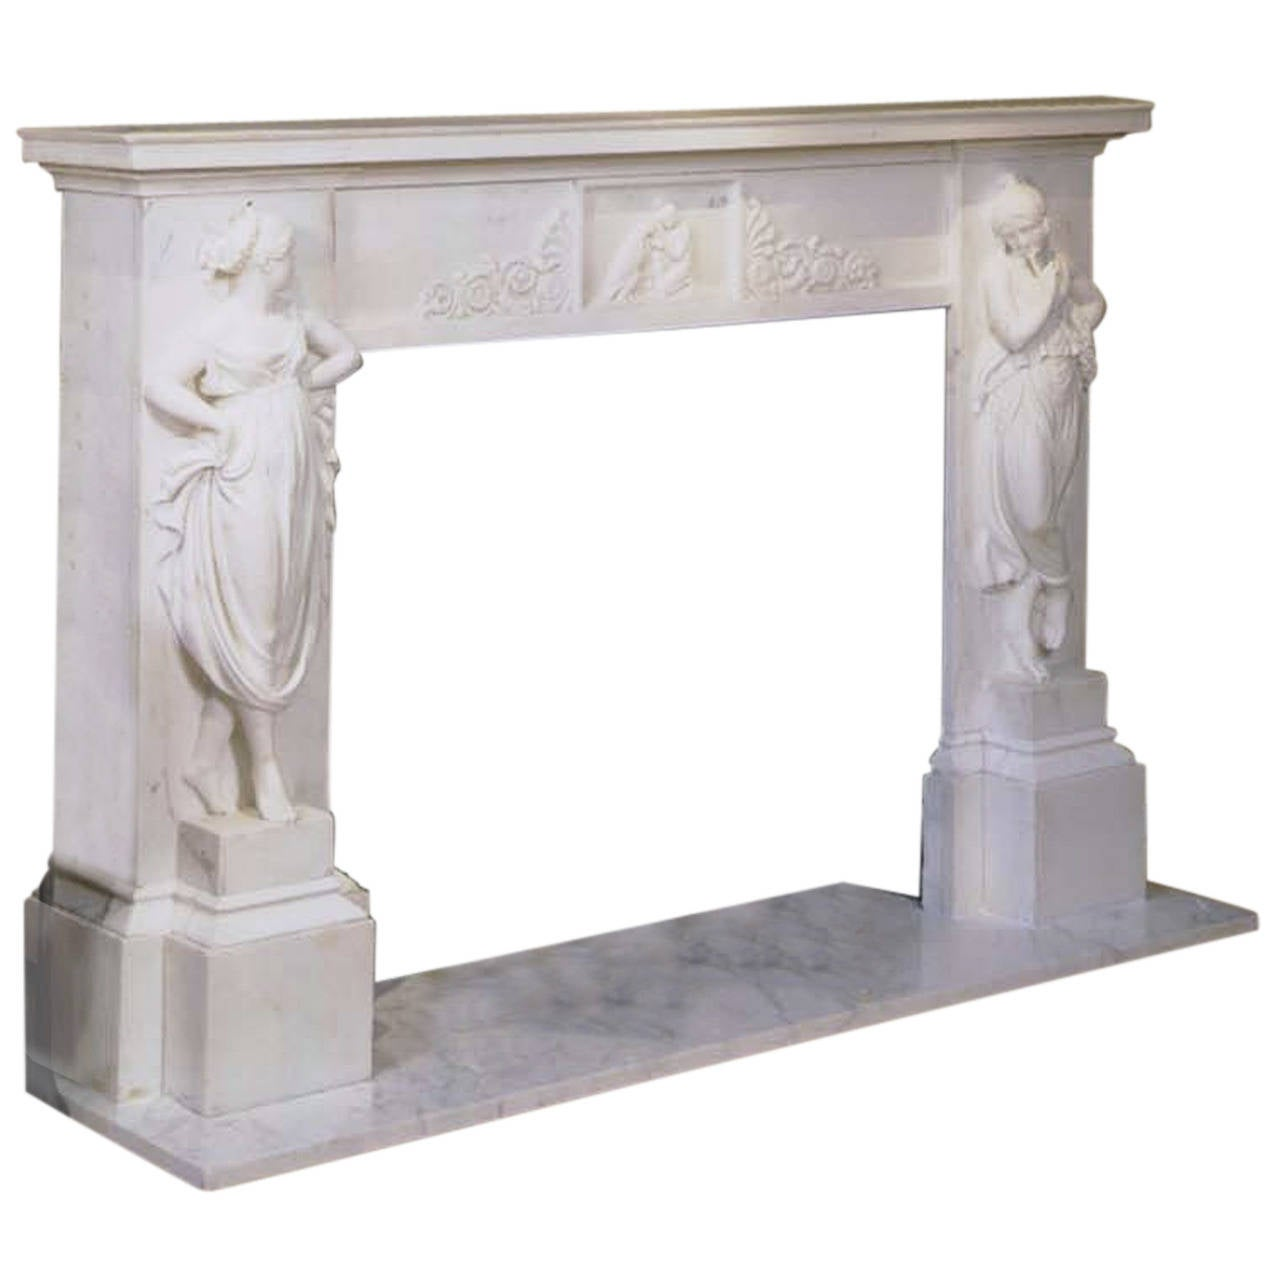 Marble mantel surround, ca. 1820